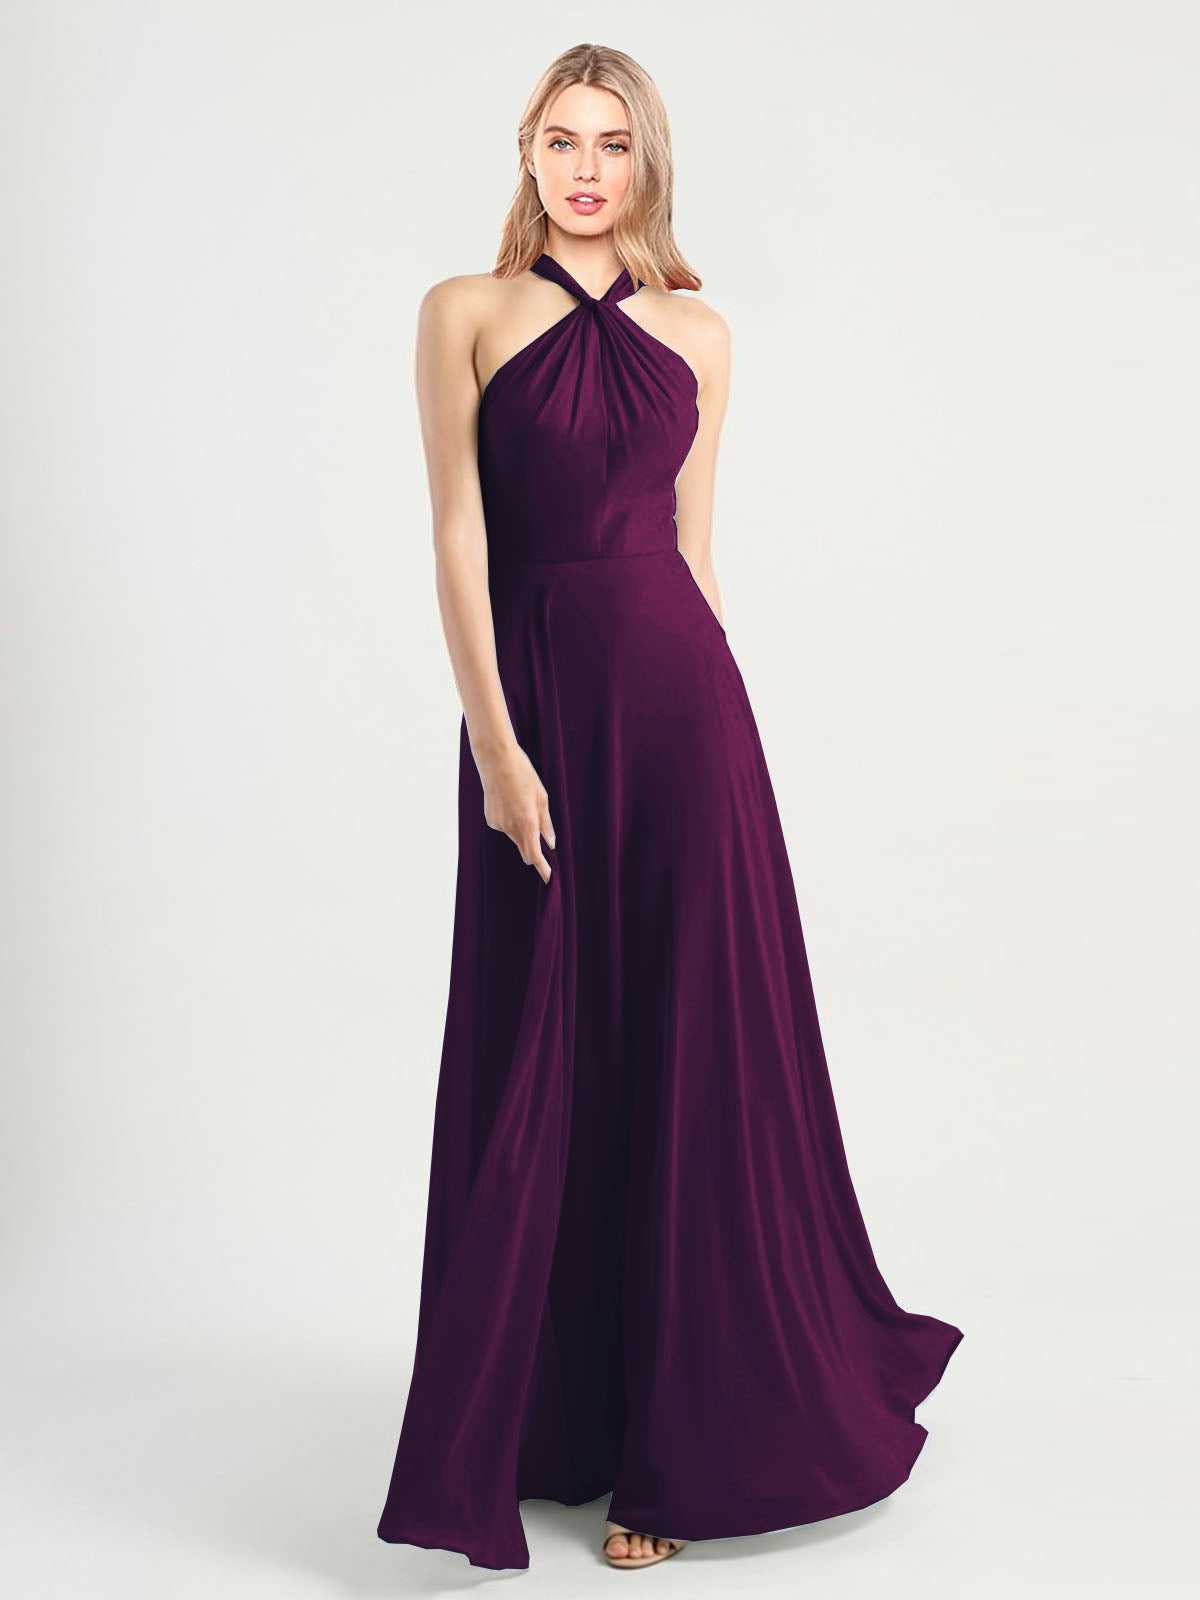 Long A-Line High Neck, Halter Sleeveless Grape Chiffon Bridesmaid Dress Yoli